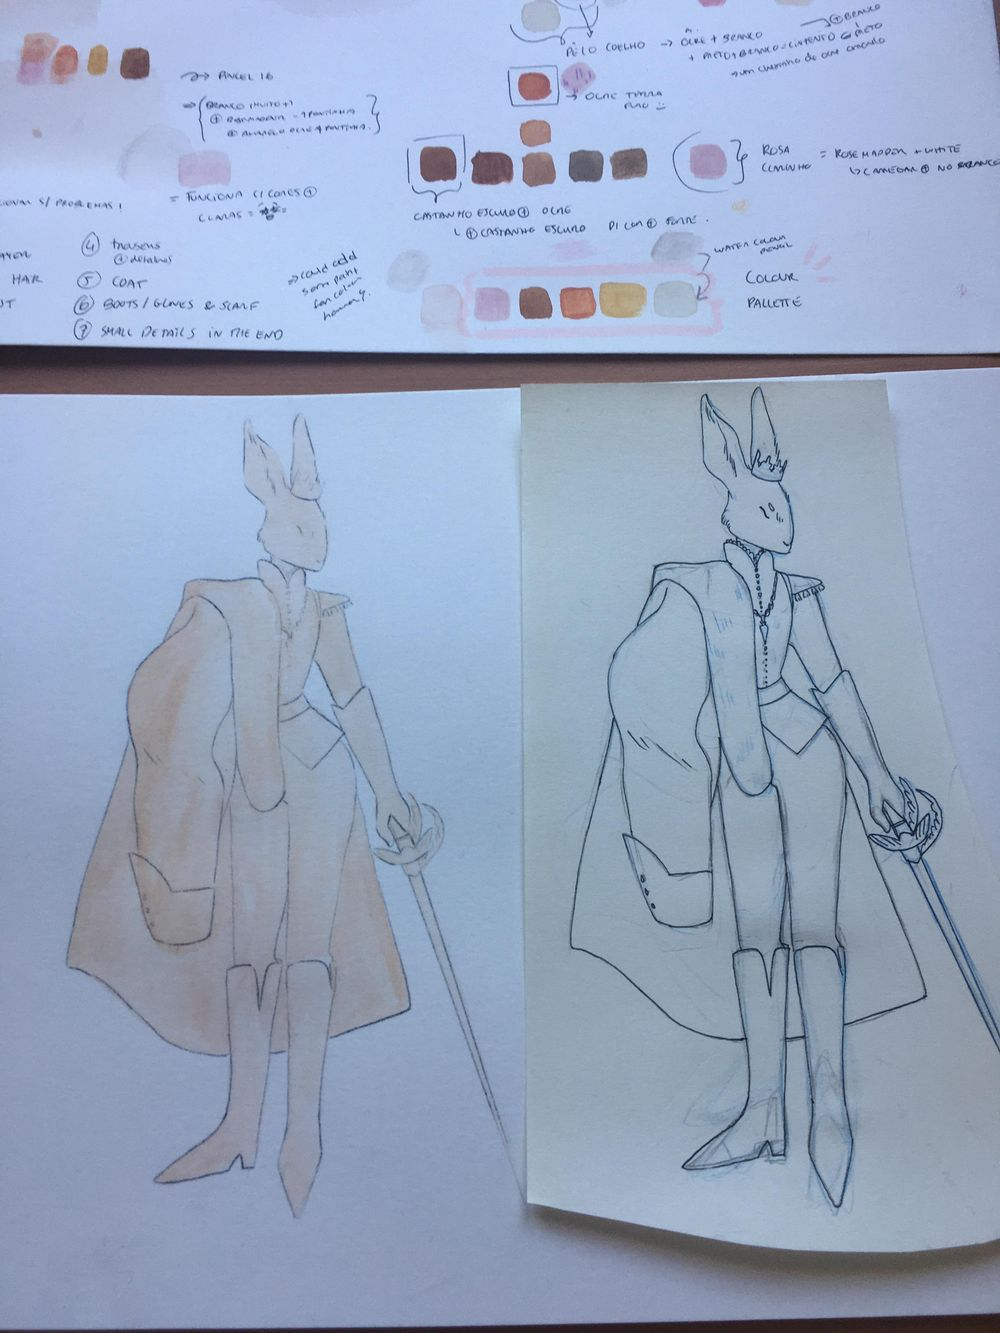 Bunny Prince - image 6 - student project